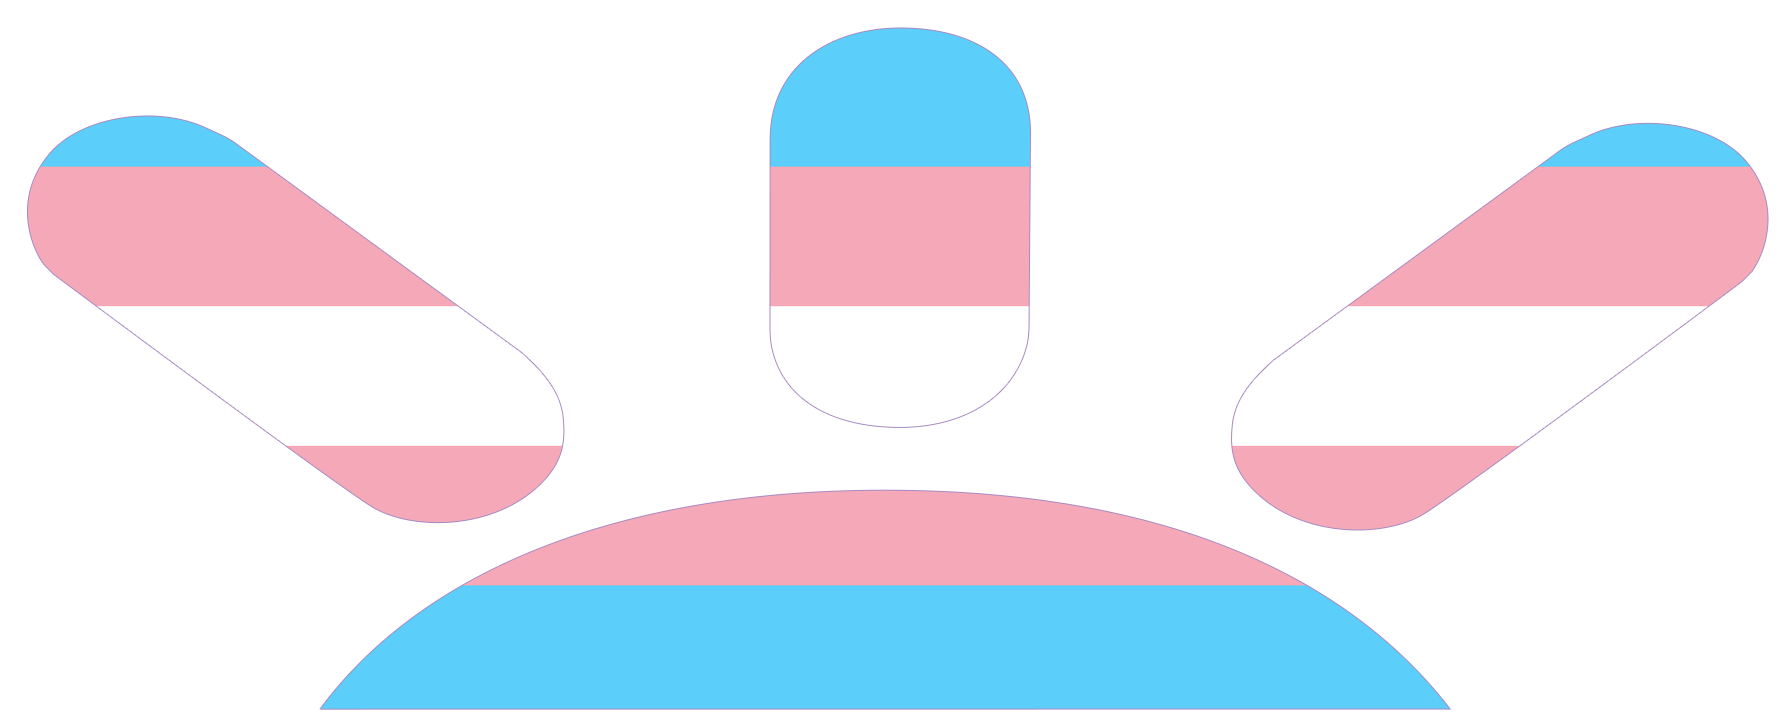 gofundme logo with trans colors